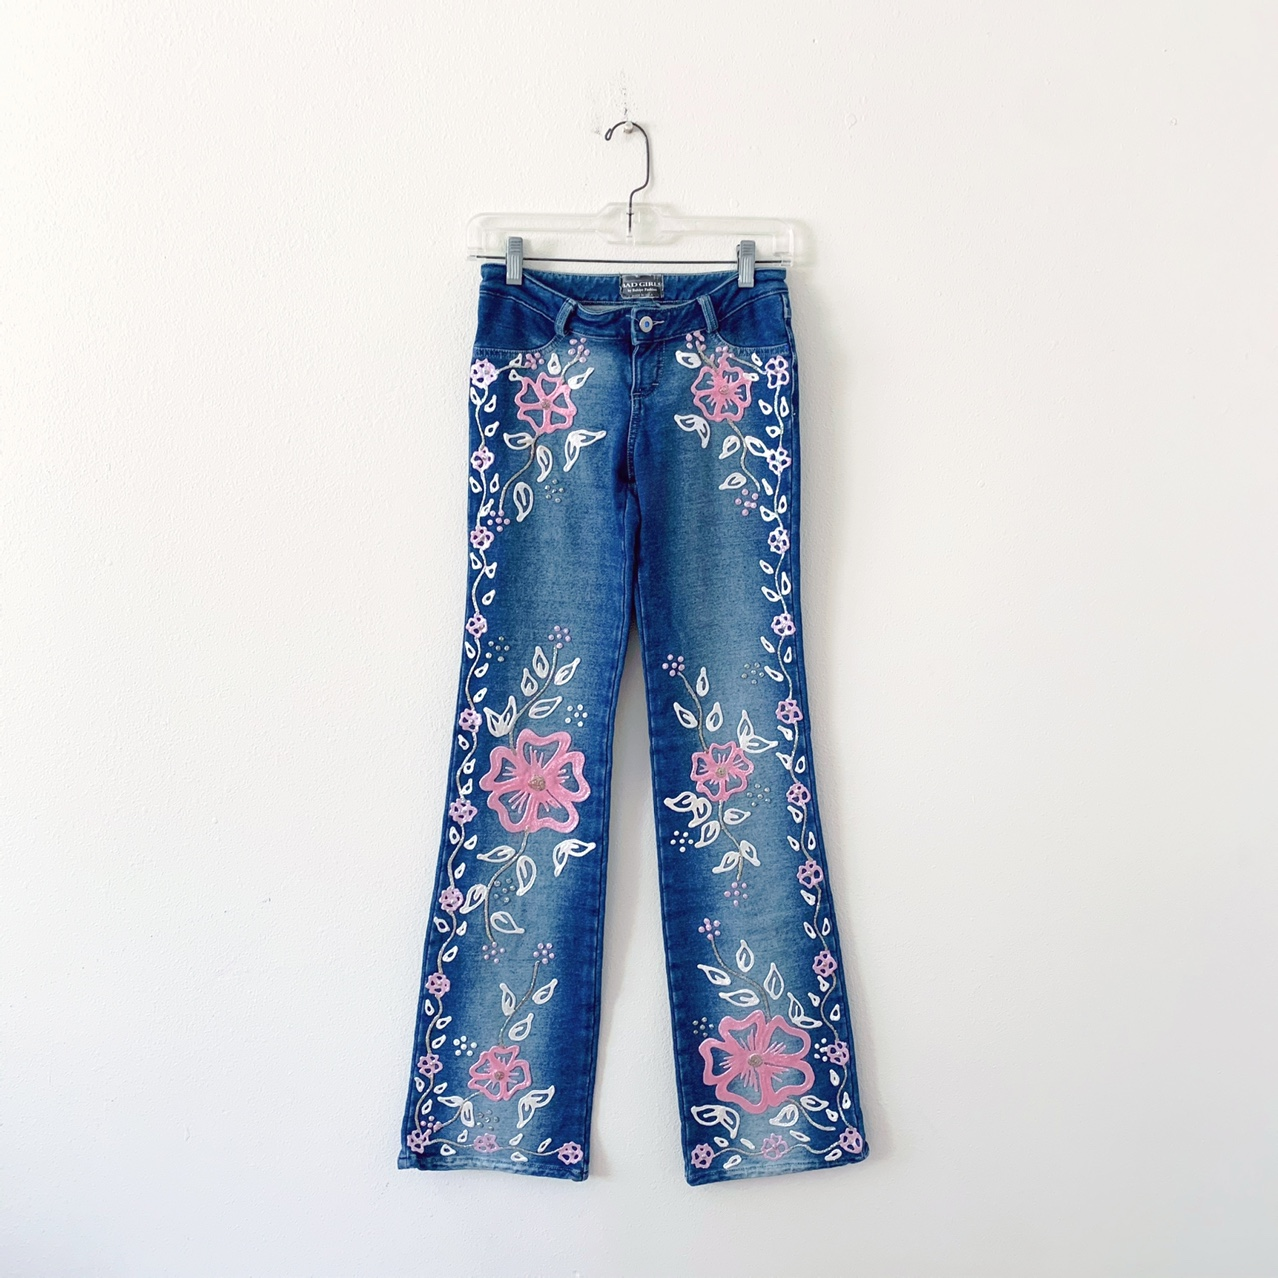 Product Image 1 - Y2K Floral Glitter Flared Jeans